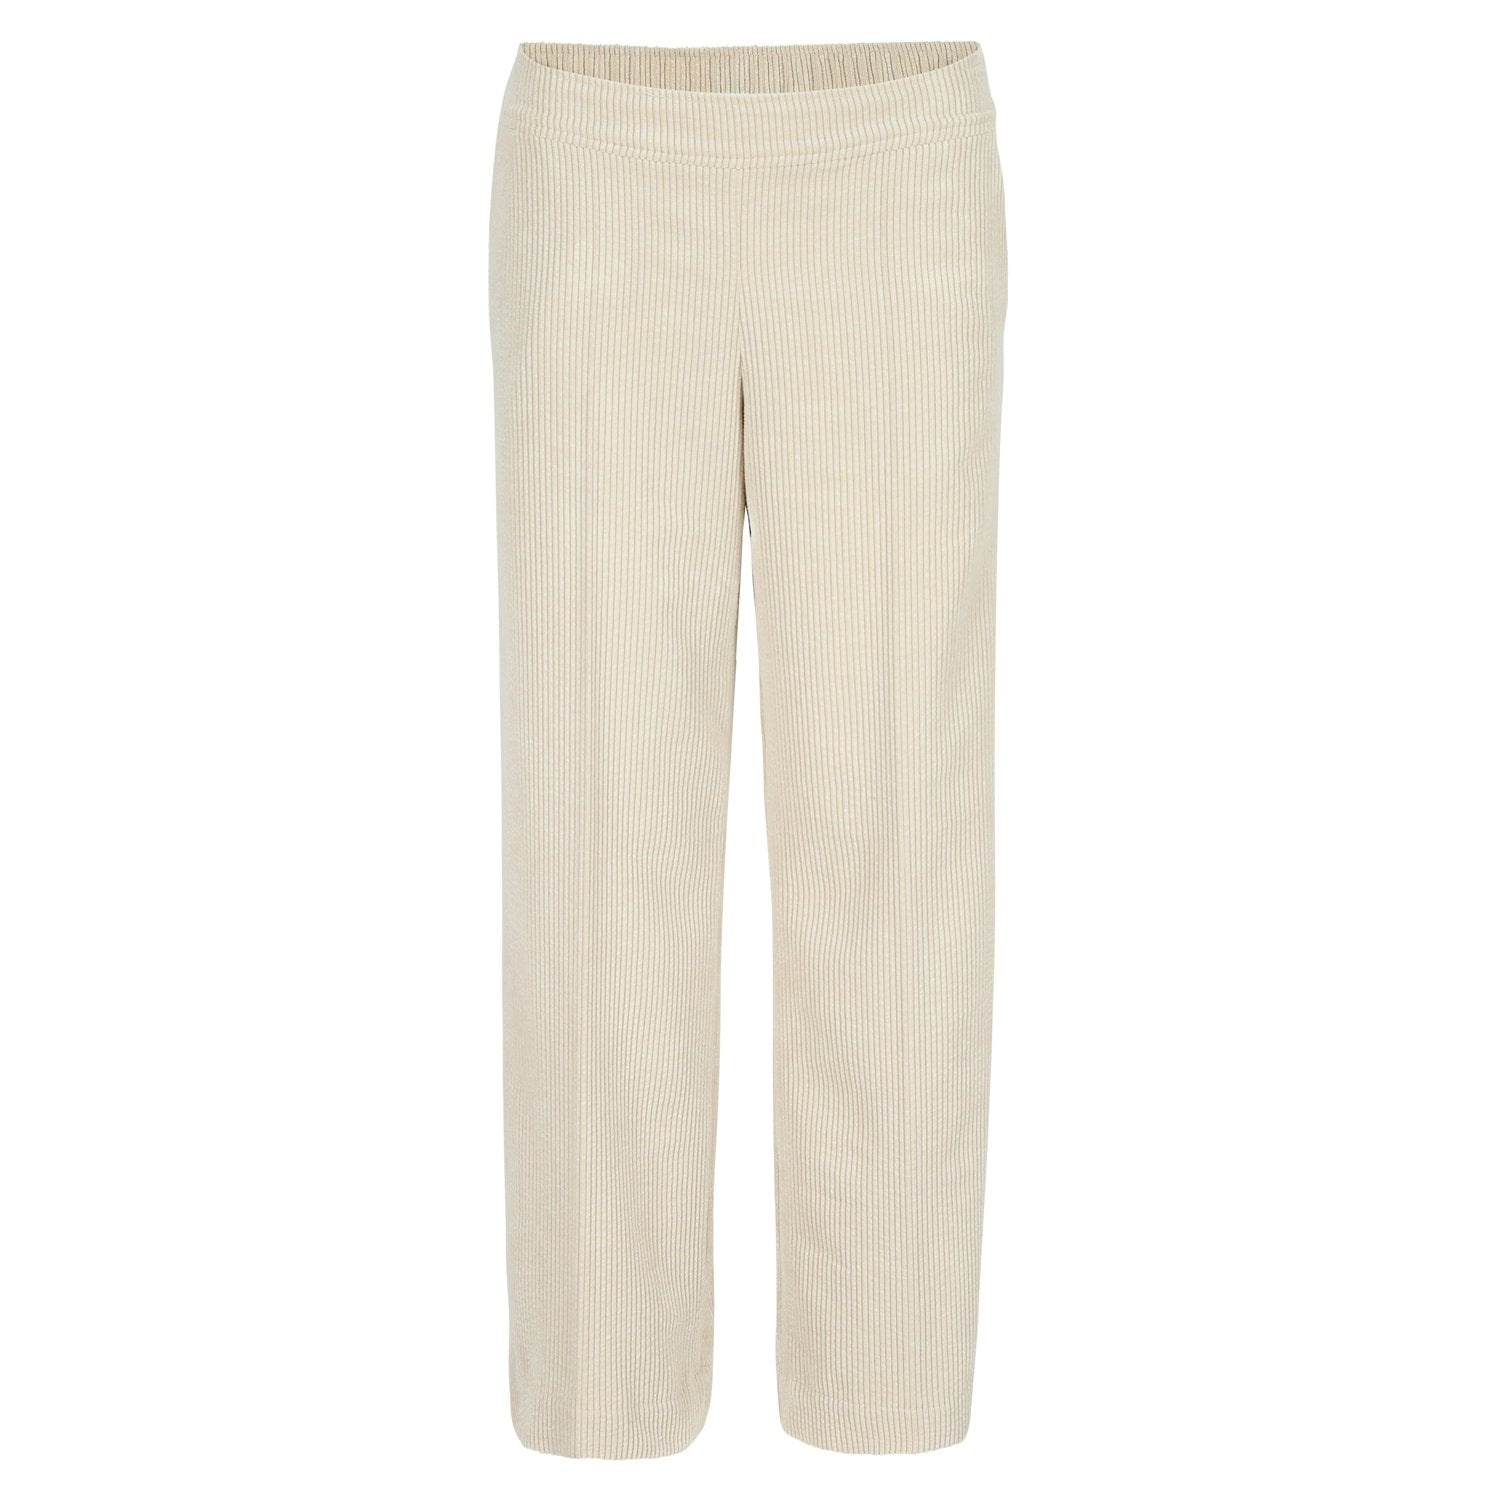 Hampton Bays - posses trousers latte